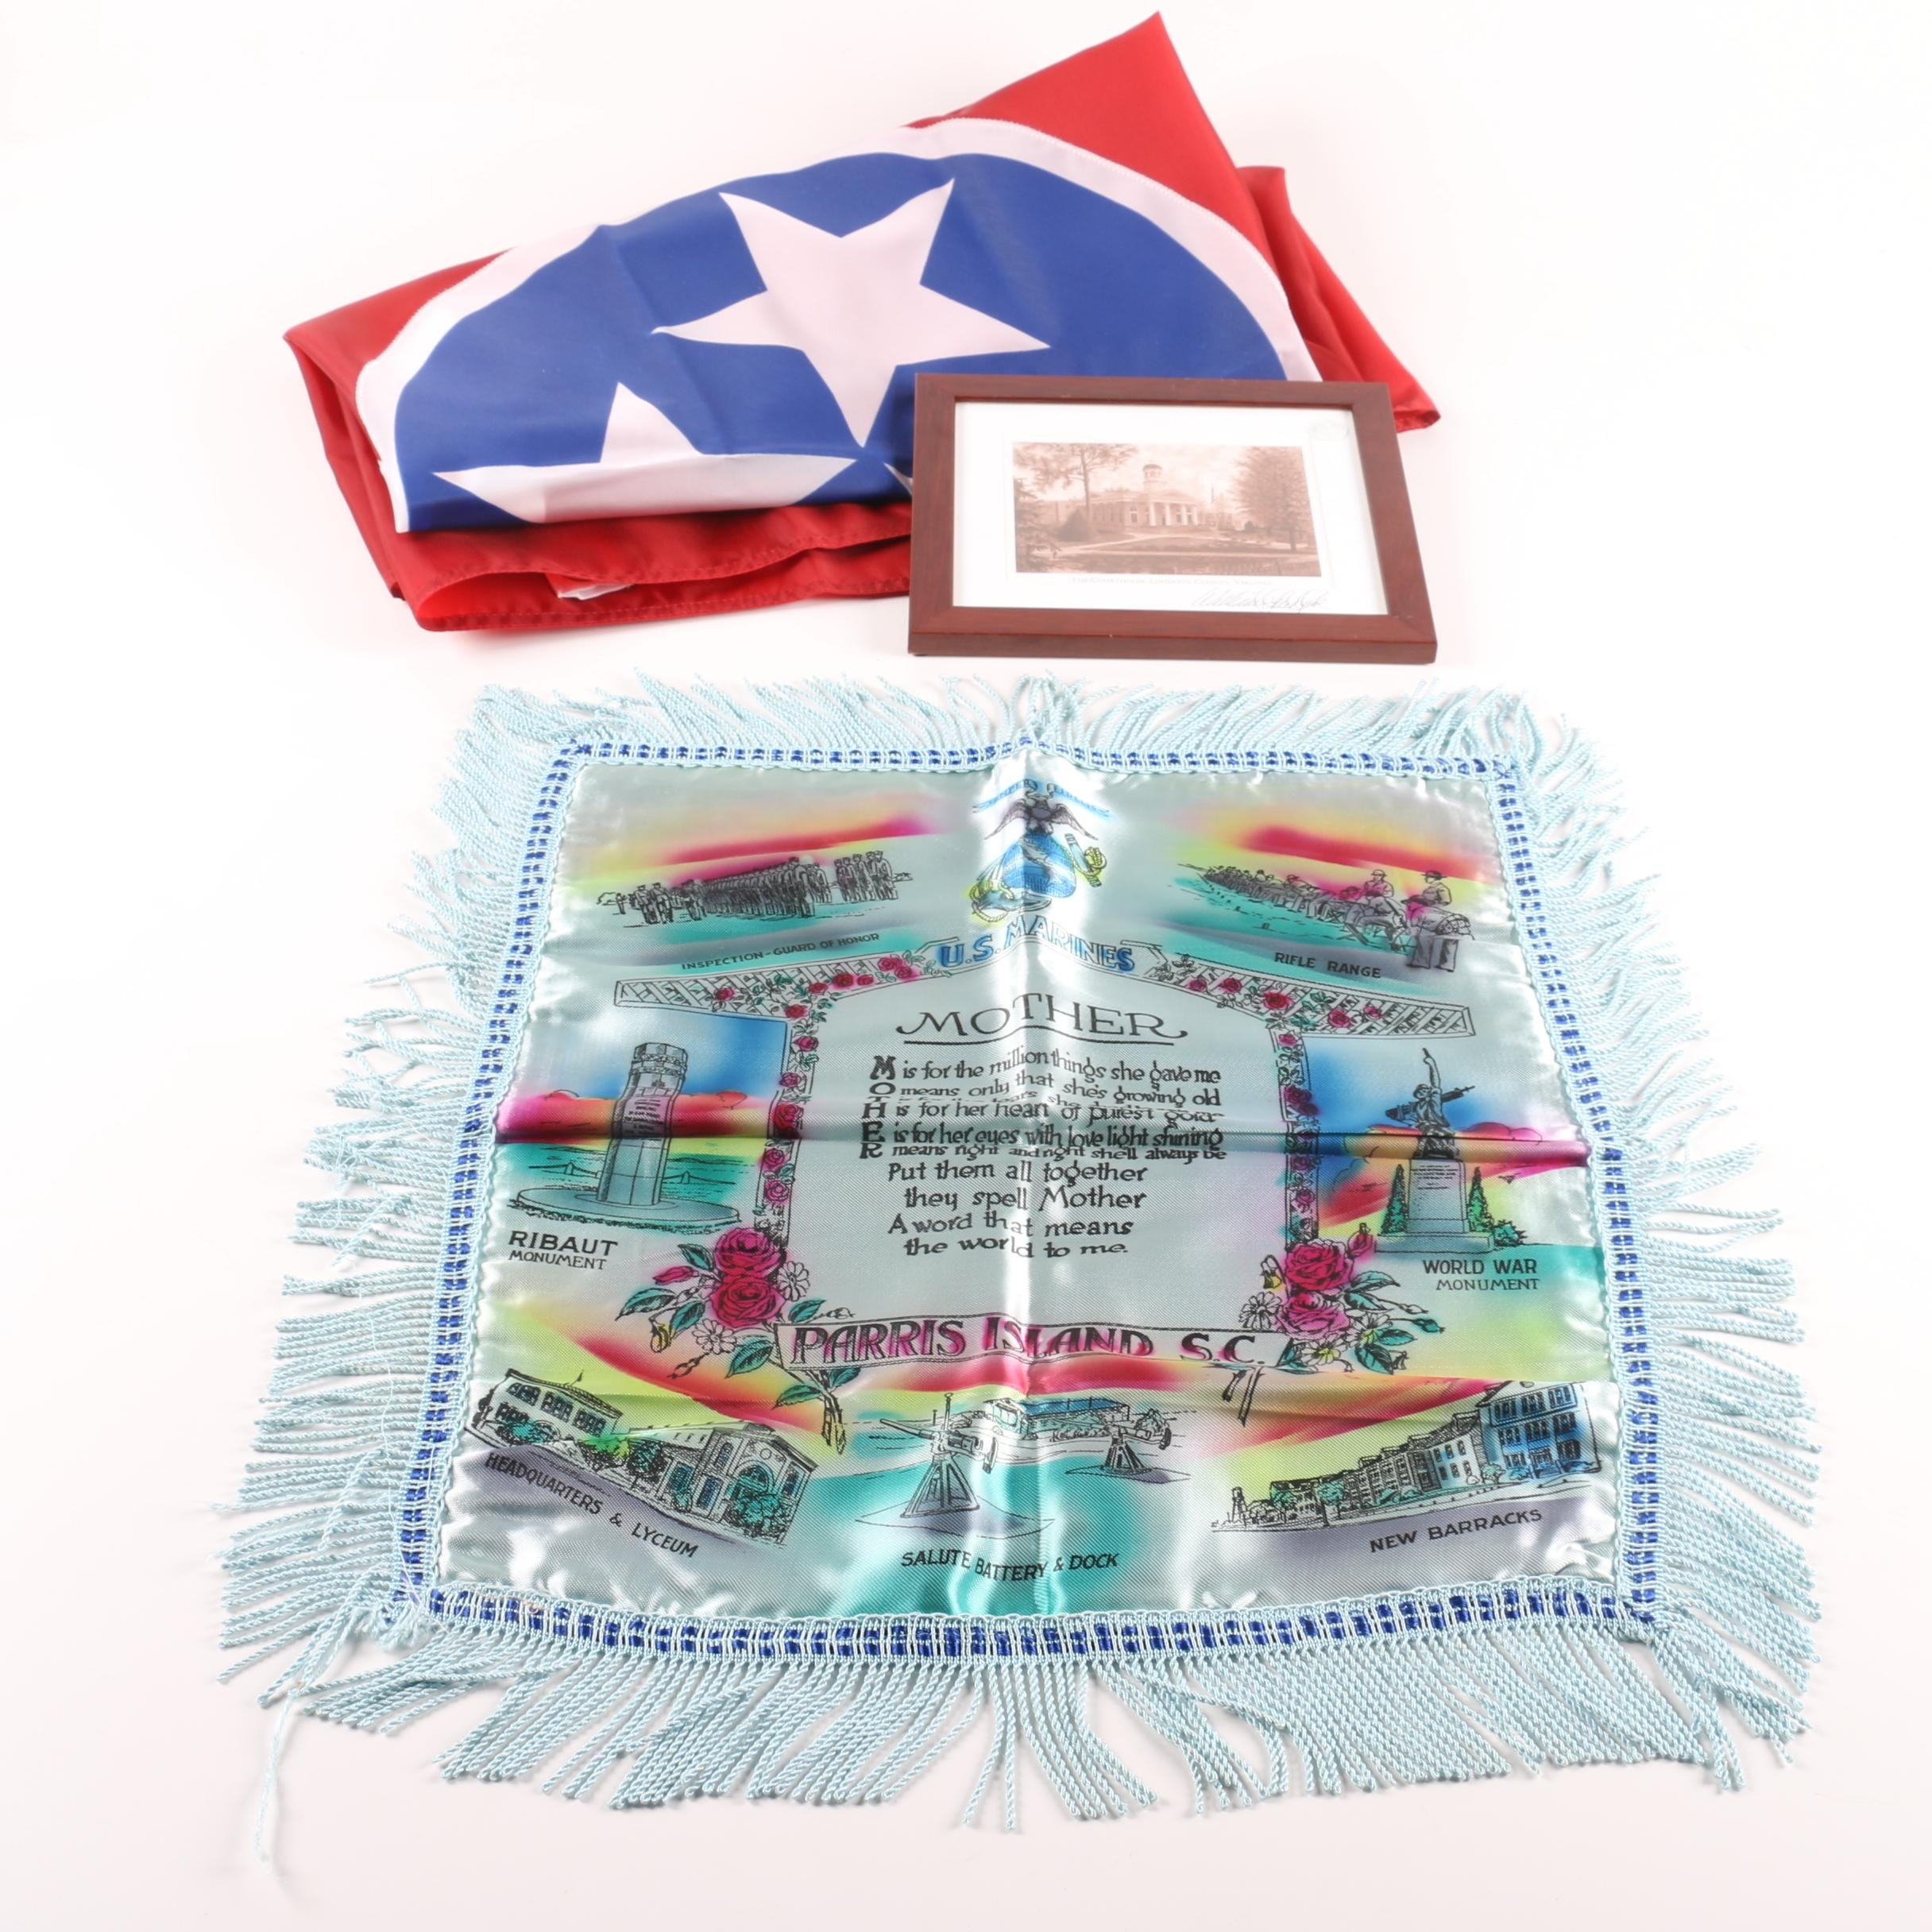 US Marines Mother Poem Pillowcase with Courthouse Print and Tennessee Flag